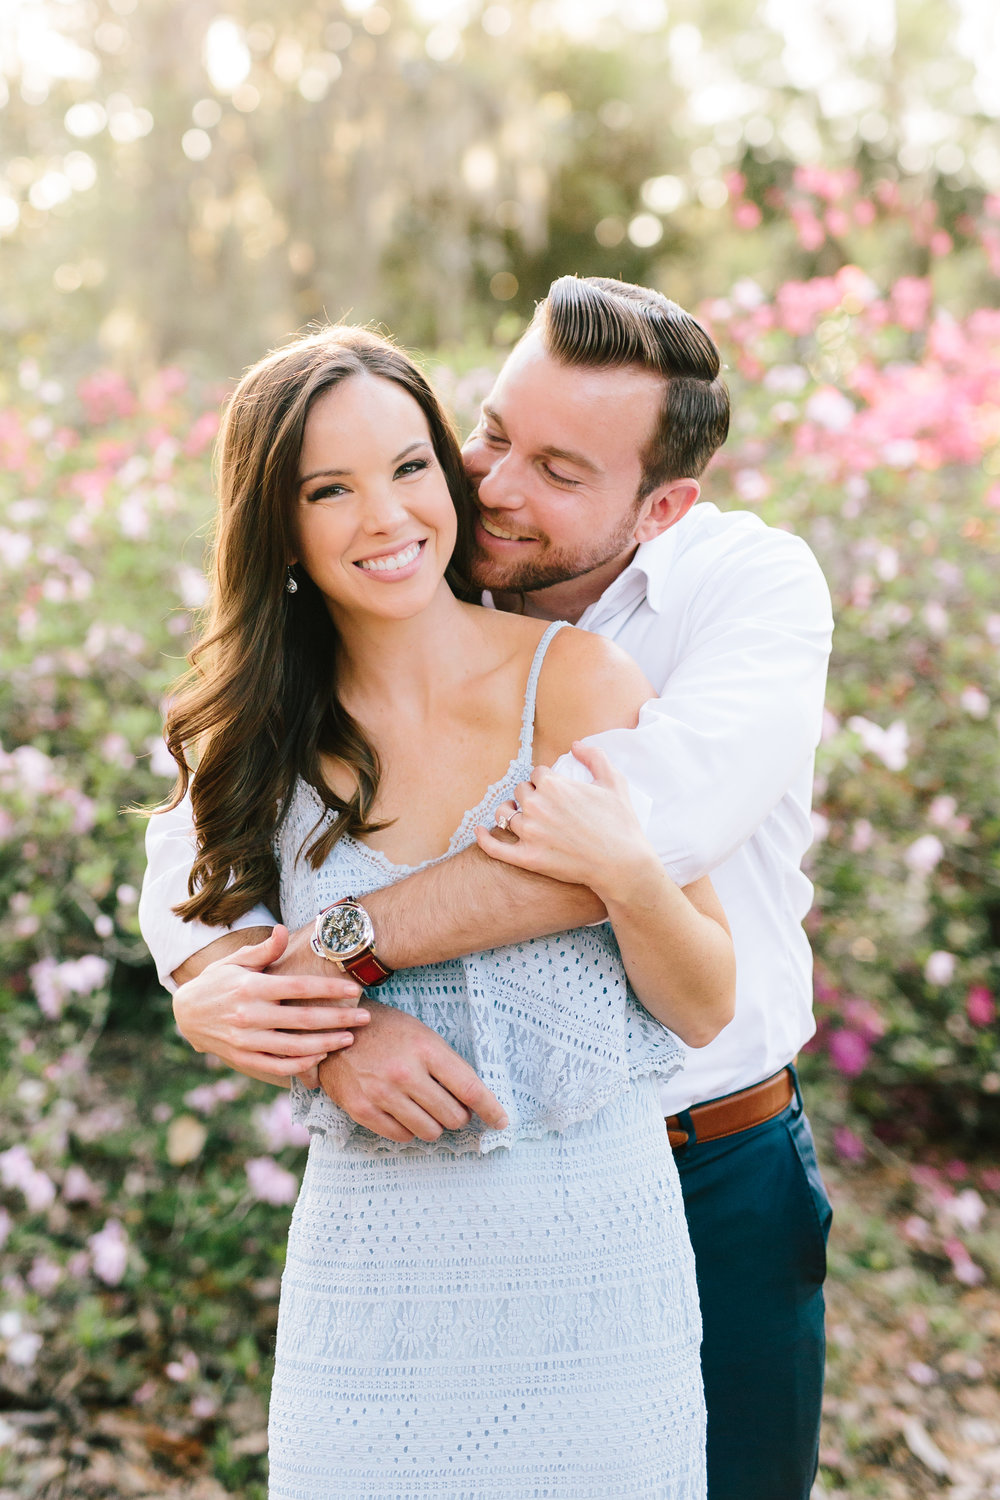 Sydney + Michael Engagement -52.jpg